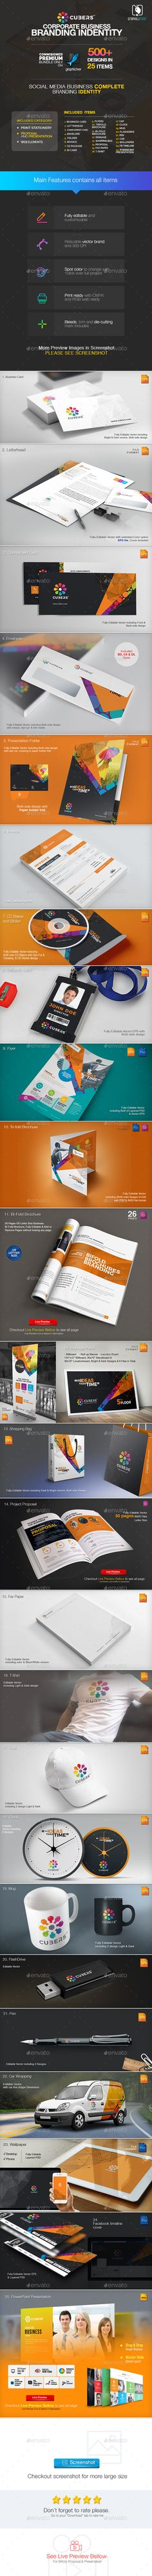 36 Page Full Proposal Package A4